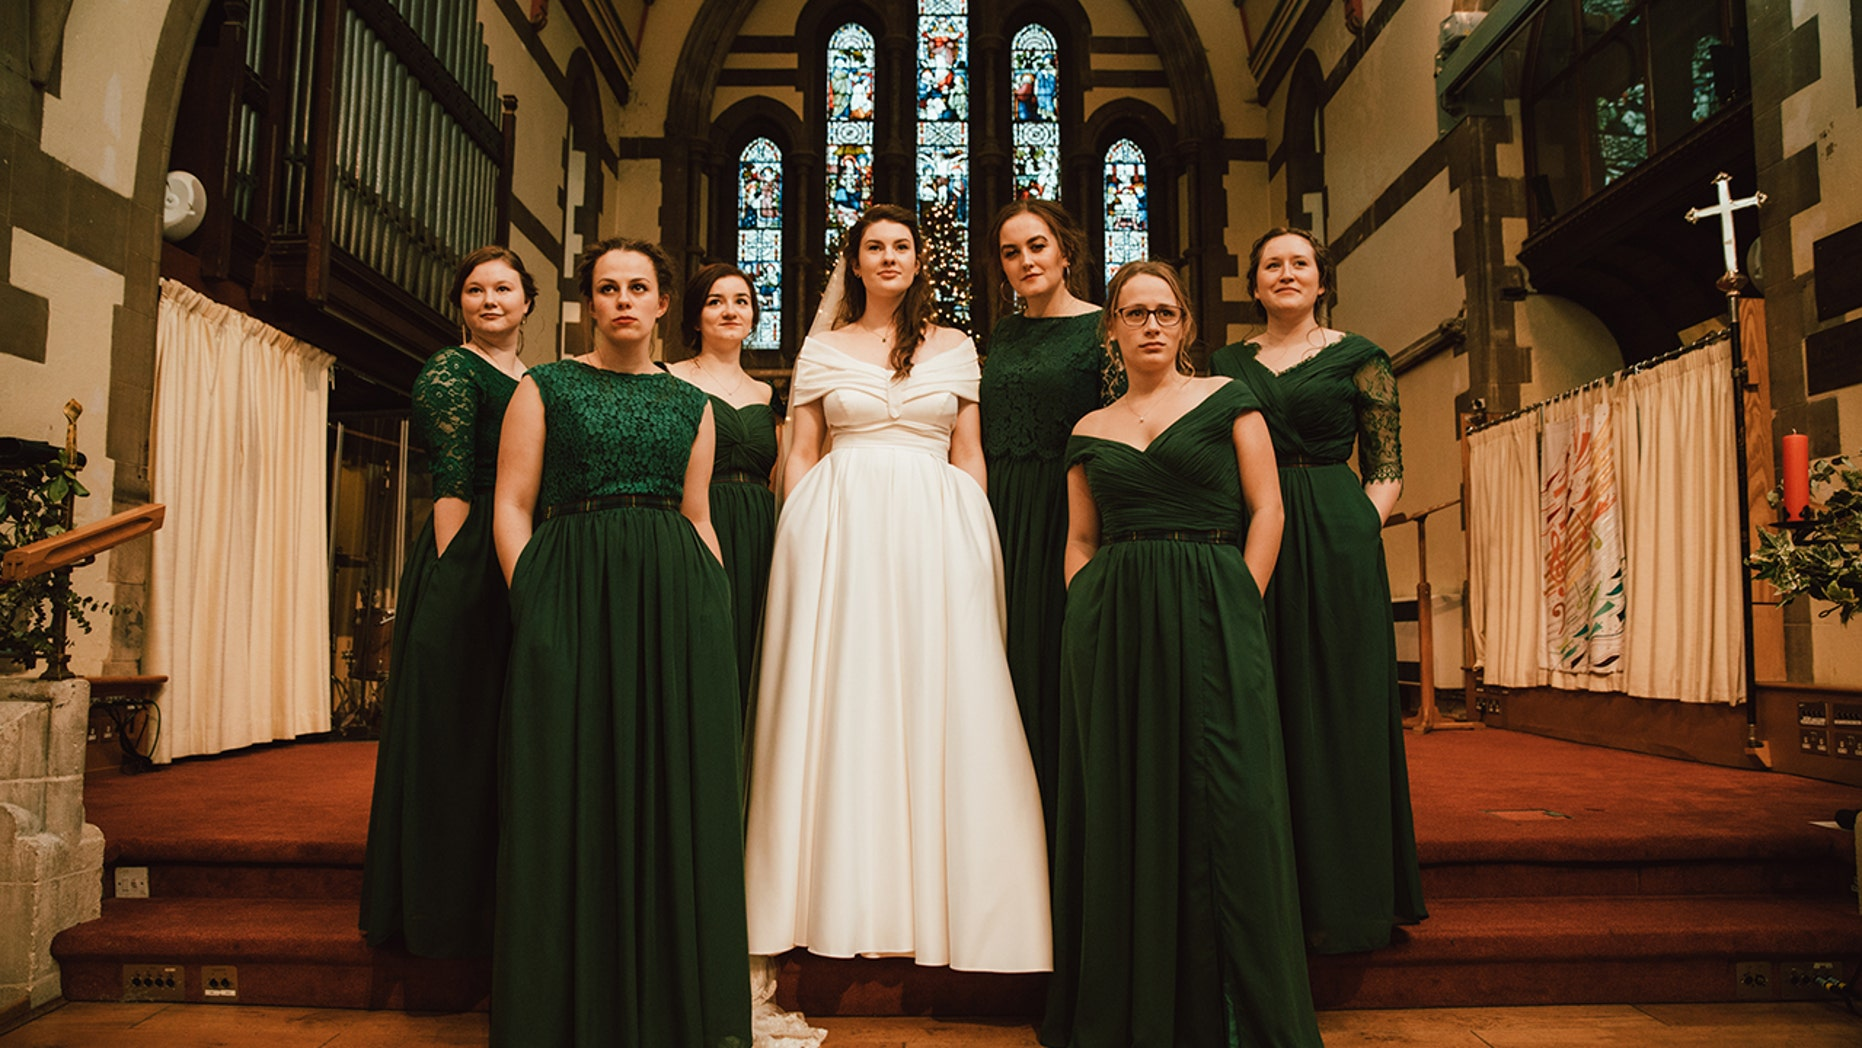 One savvy bride made sure her bridesmaids looked – and felt – their best on her wedding day, outfitting her six pals in bespoke, floor-length gowns complete with practical pockets.